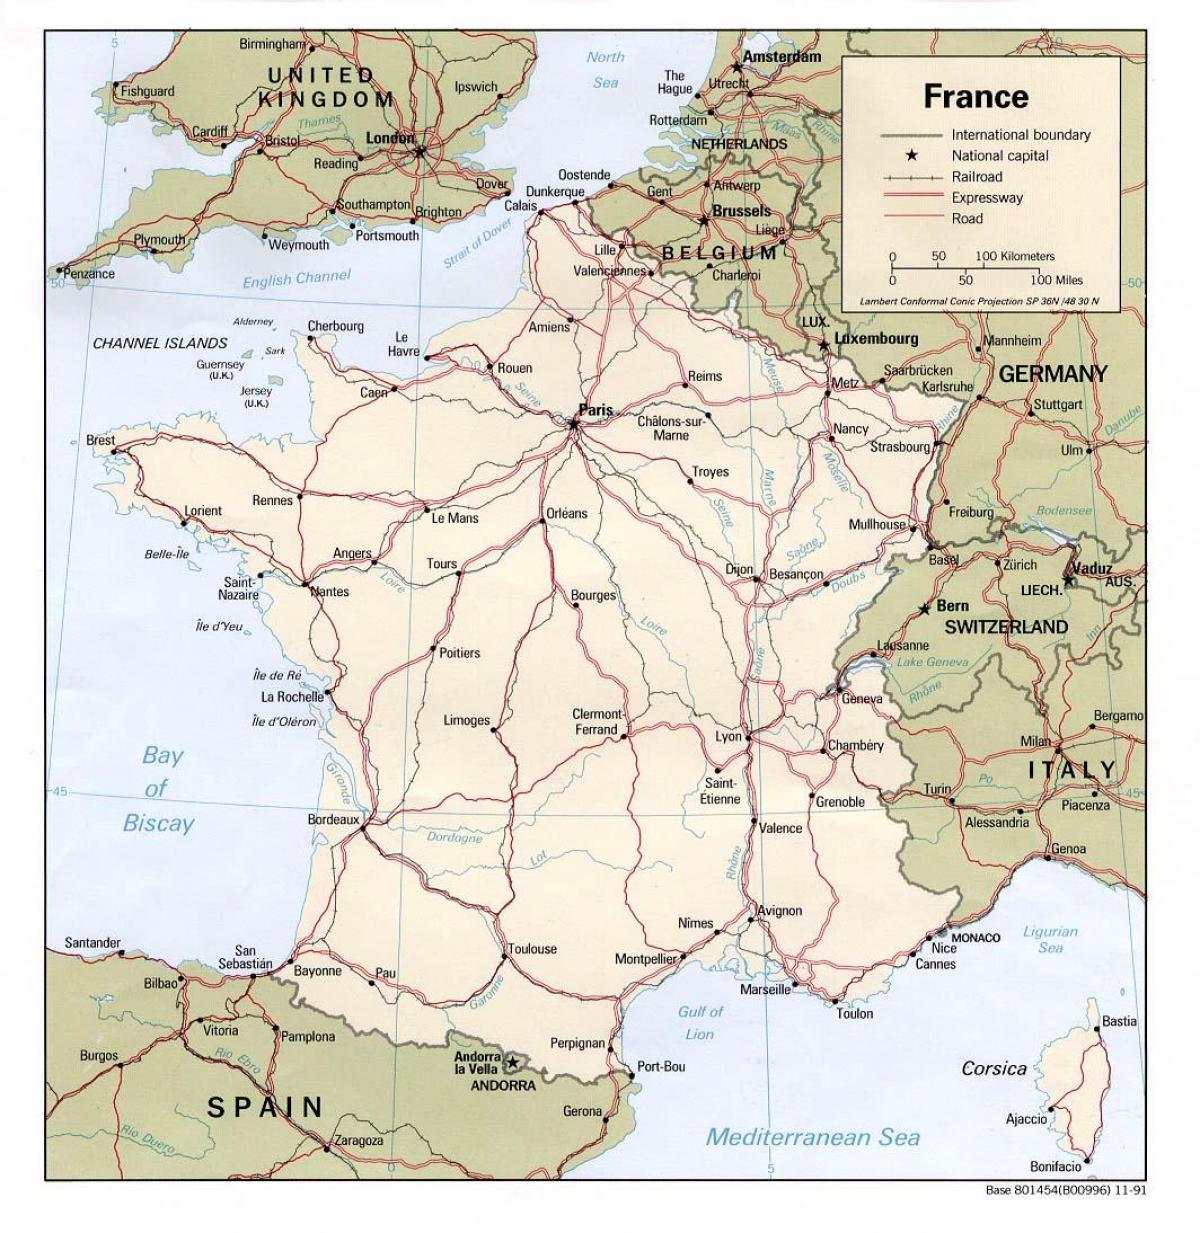 downloadable road map of France